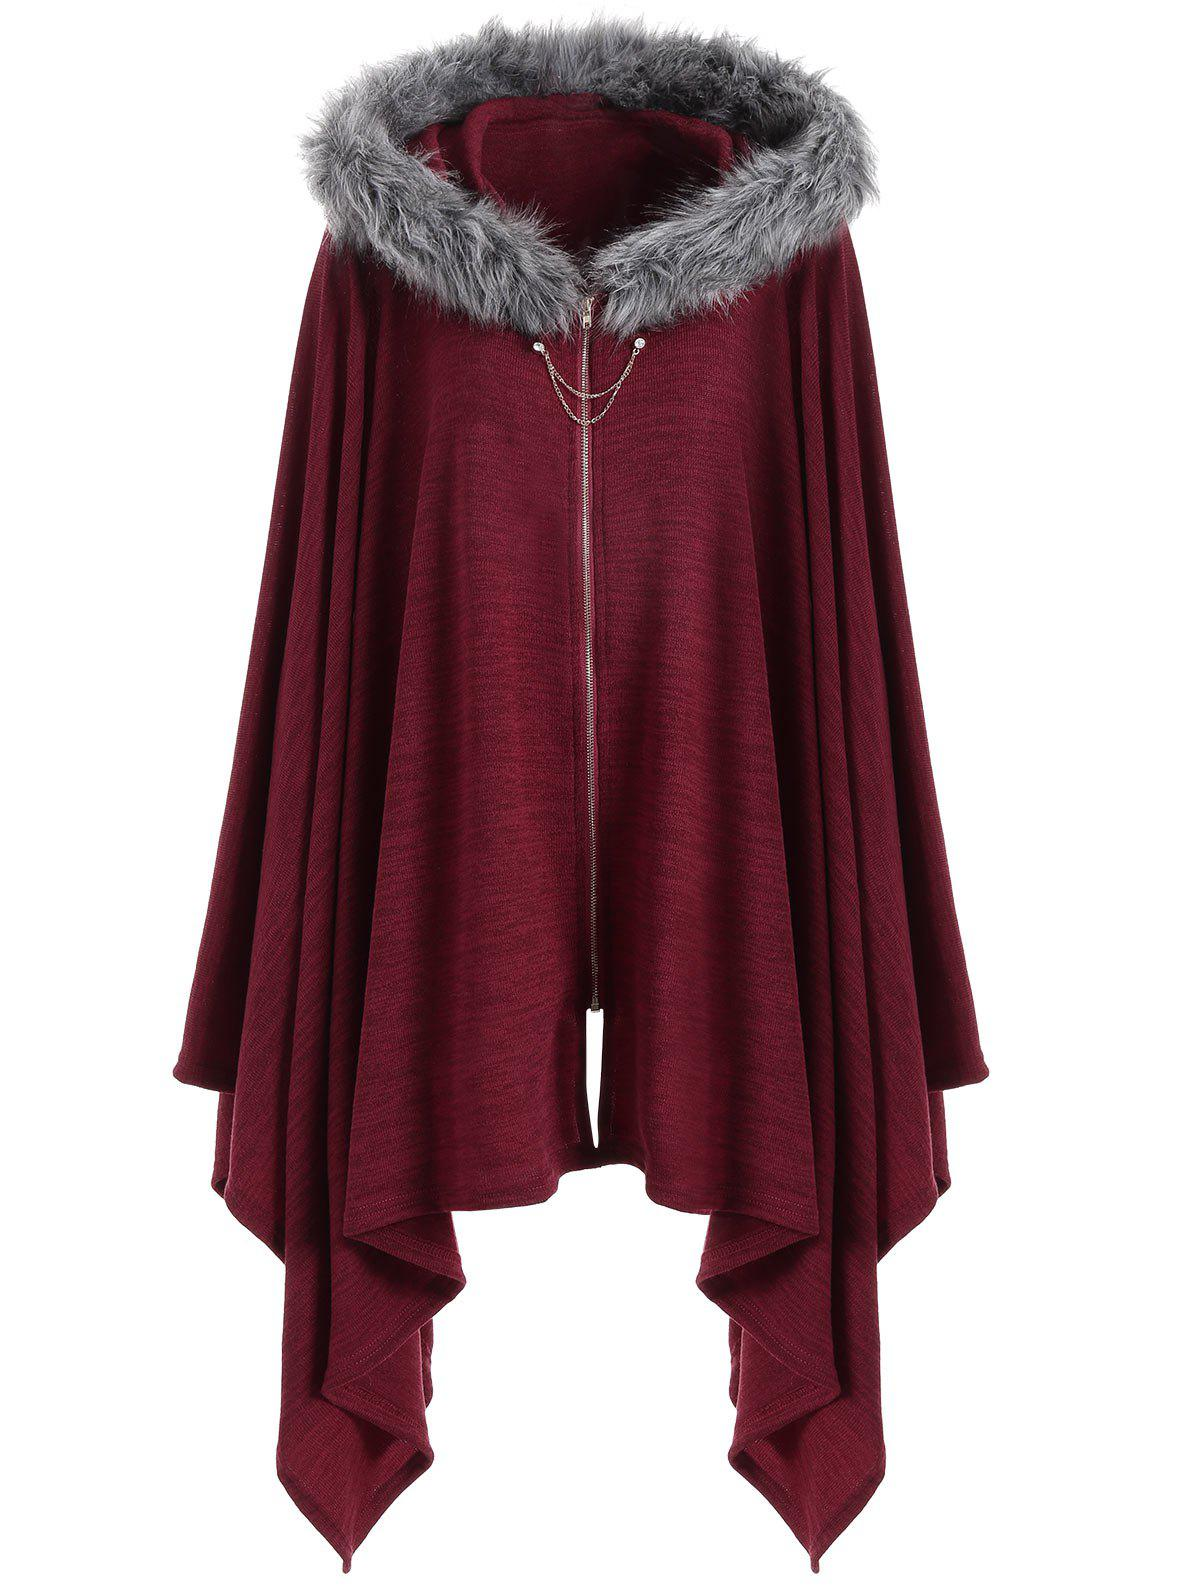 Faux Fur Insert Plus Size Asymmetric Cape CoatWOMEN<br><br>Size: 4XL; Color: WINE RED; Clothes Type: Others; Material: Polyester,Spandex; Type: Wide-waisted; Shirt Length: Regular; Sleeve Length: Full; Collar: Hooded; Pattern Type: Solid; Style: Fashion; Season: Fall,Winter; Weight: 0.4700kg; Package Contents: 1 x Coat;